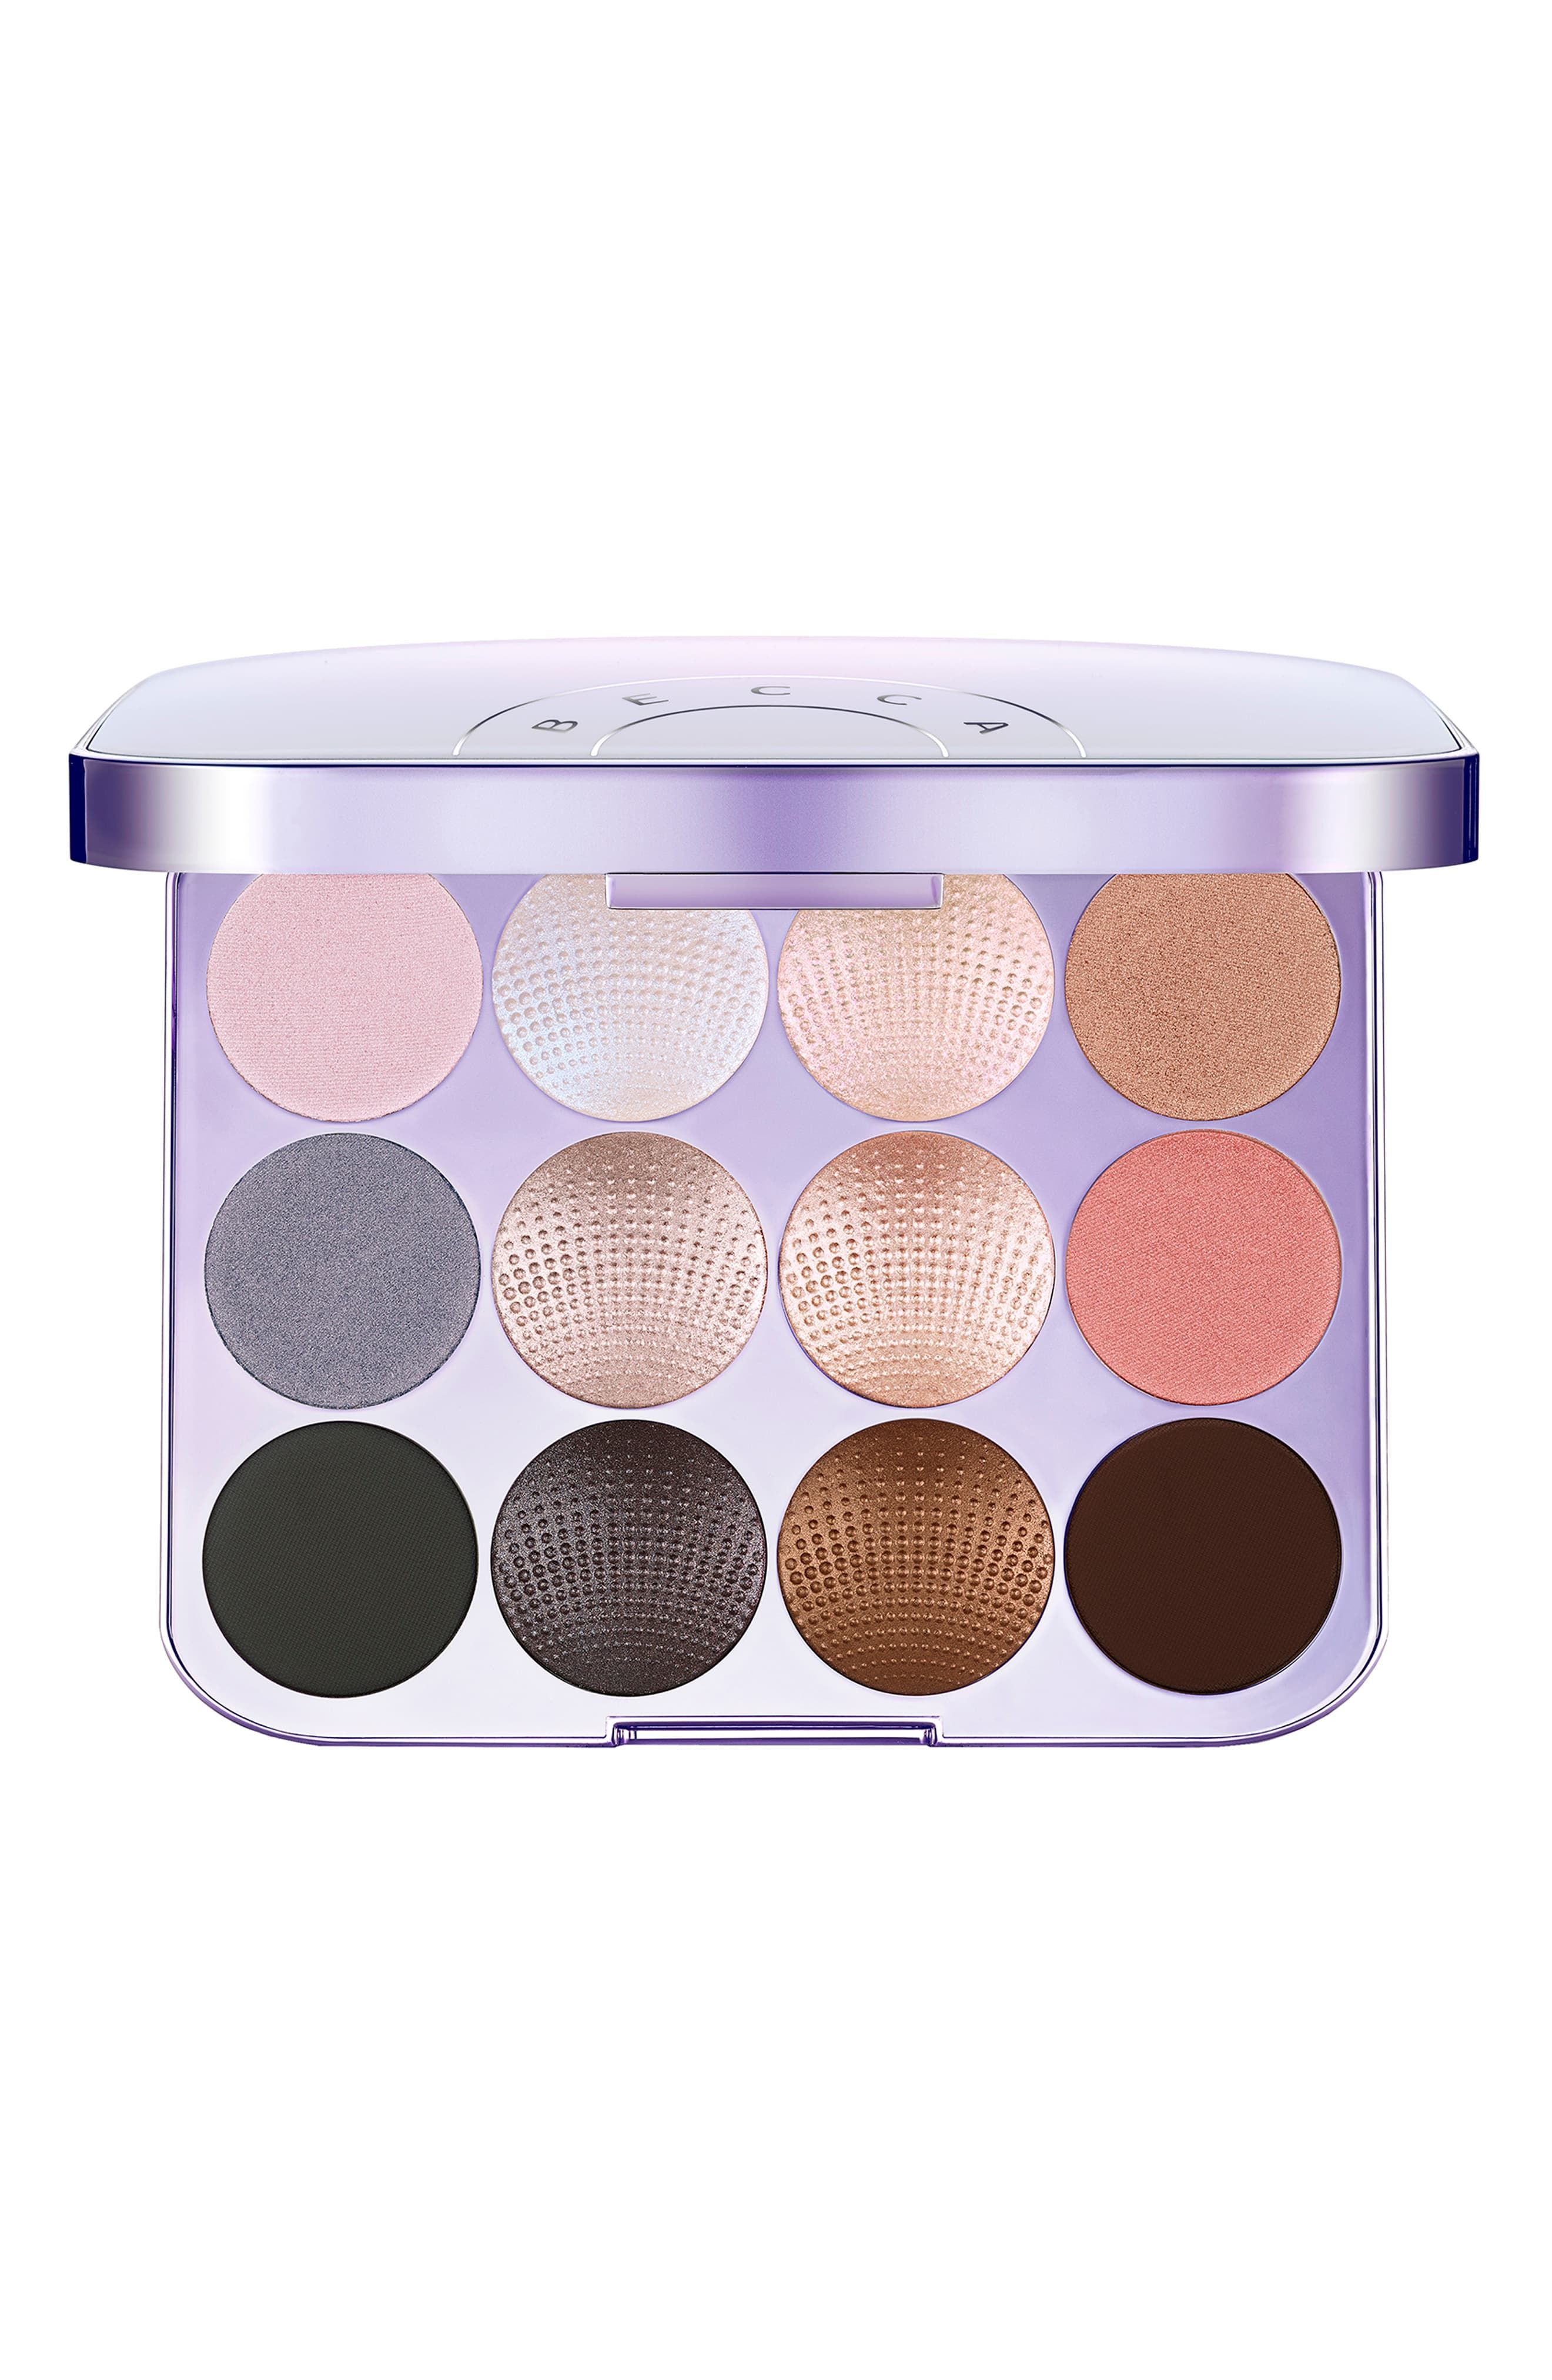 Photo of BECCA Pearl Glow Shimmering Eyeshadow Palette (Limited Edition) | Nordstrom